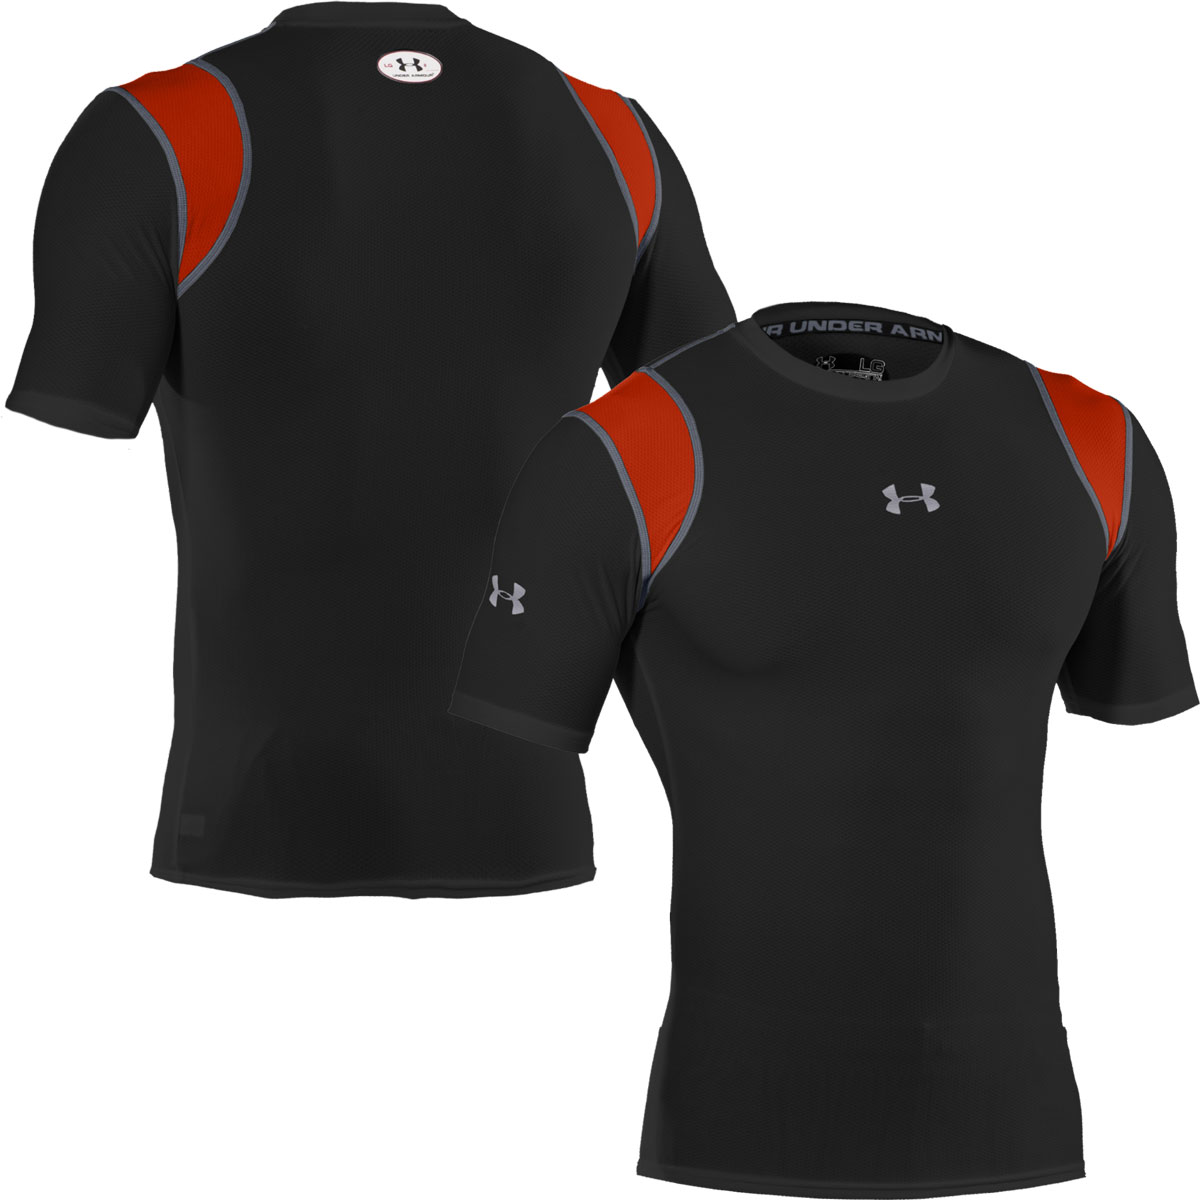 Coachbase the best compression shirts for your players for Under armor business shirts